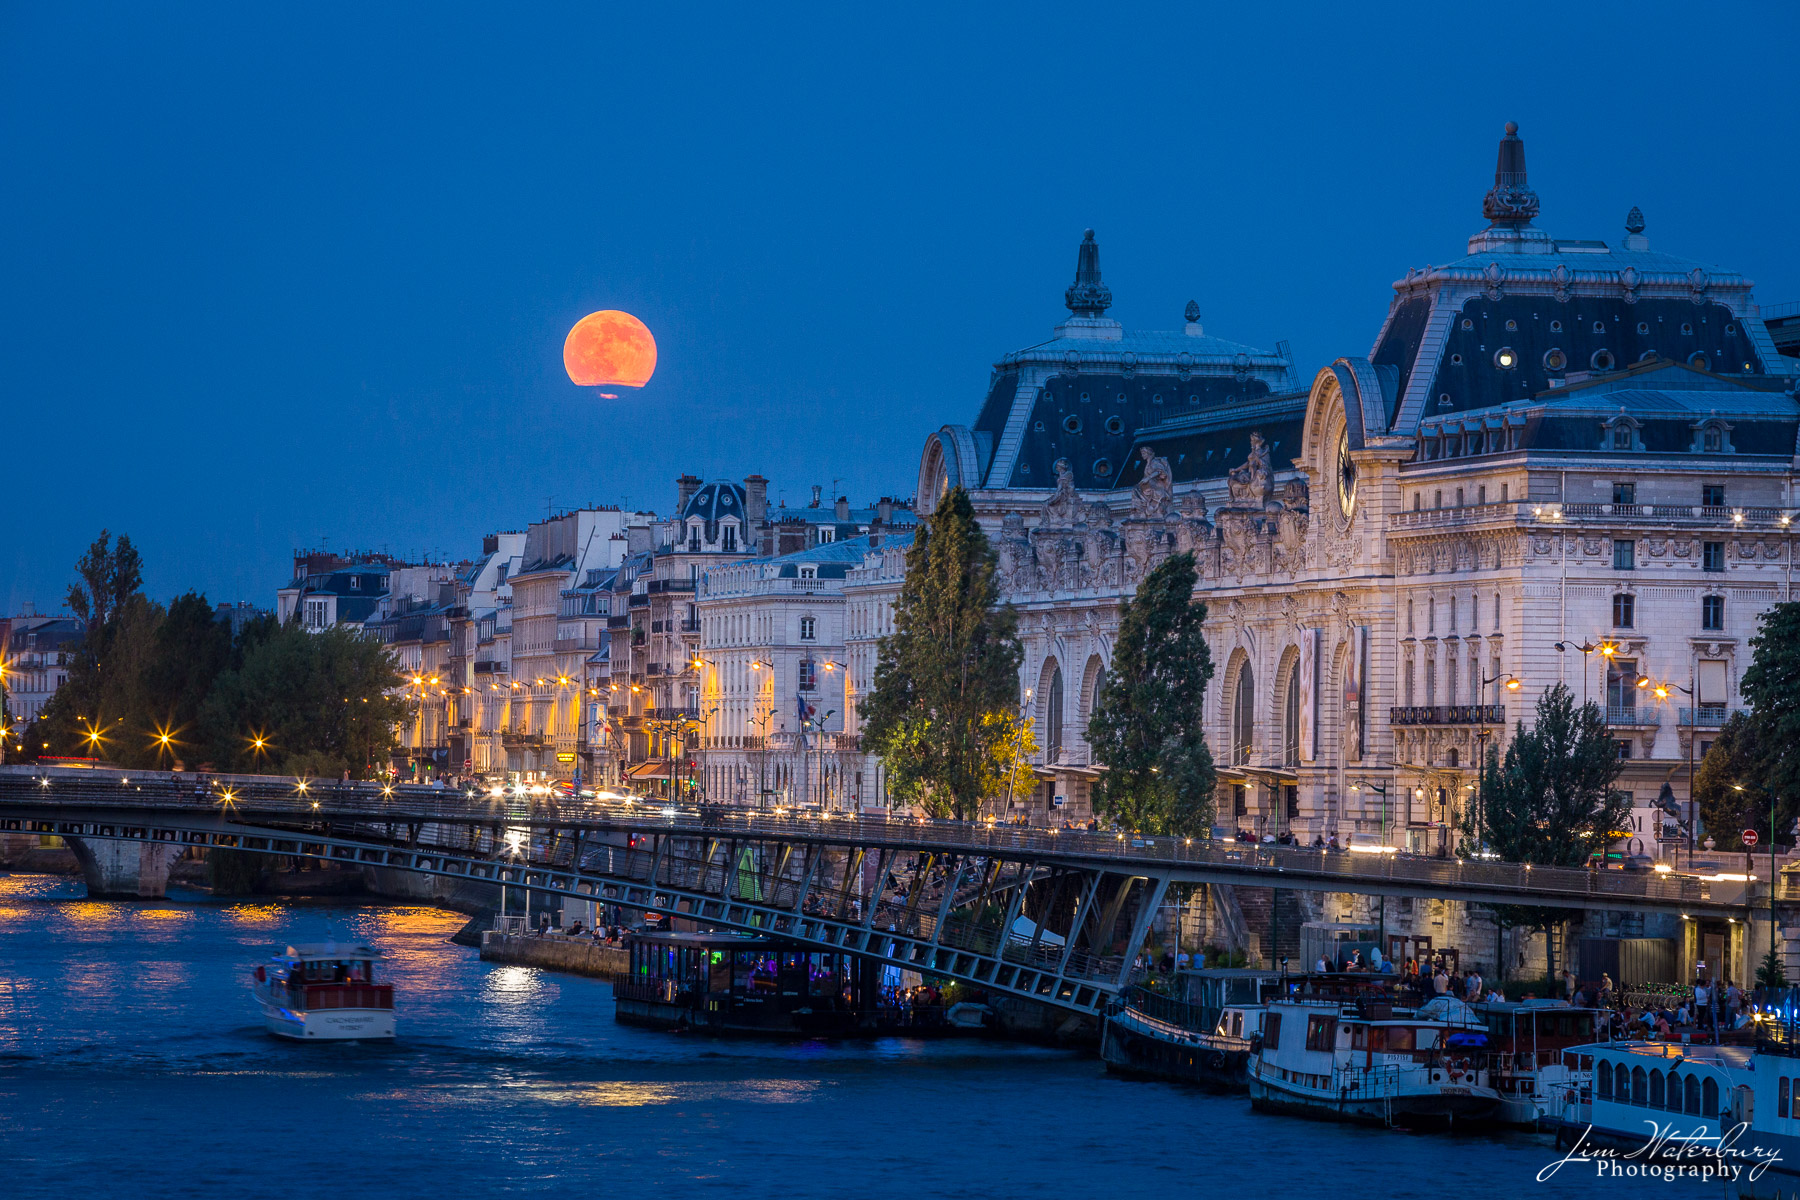 Full moon rises over the Musee d'Orsay in Paris just after sunset.